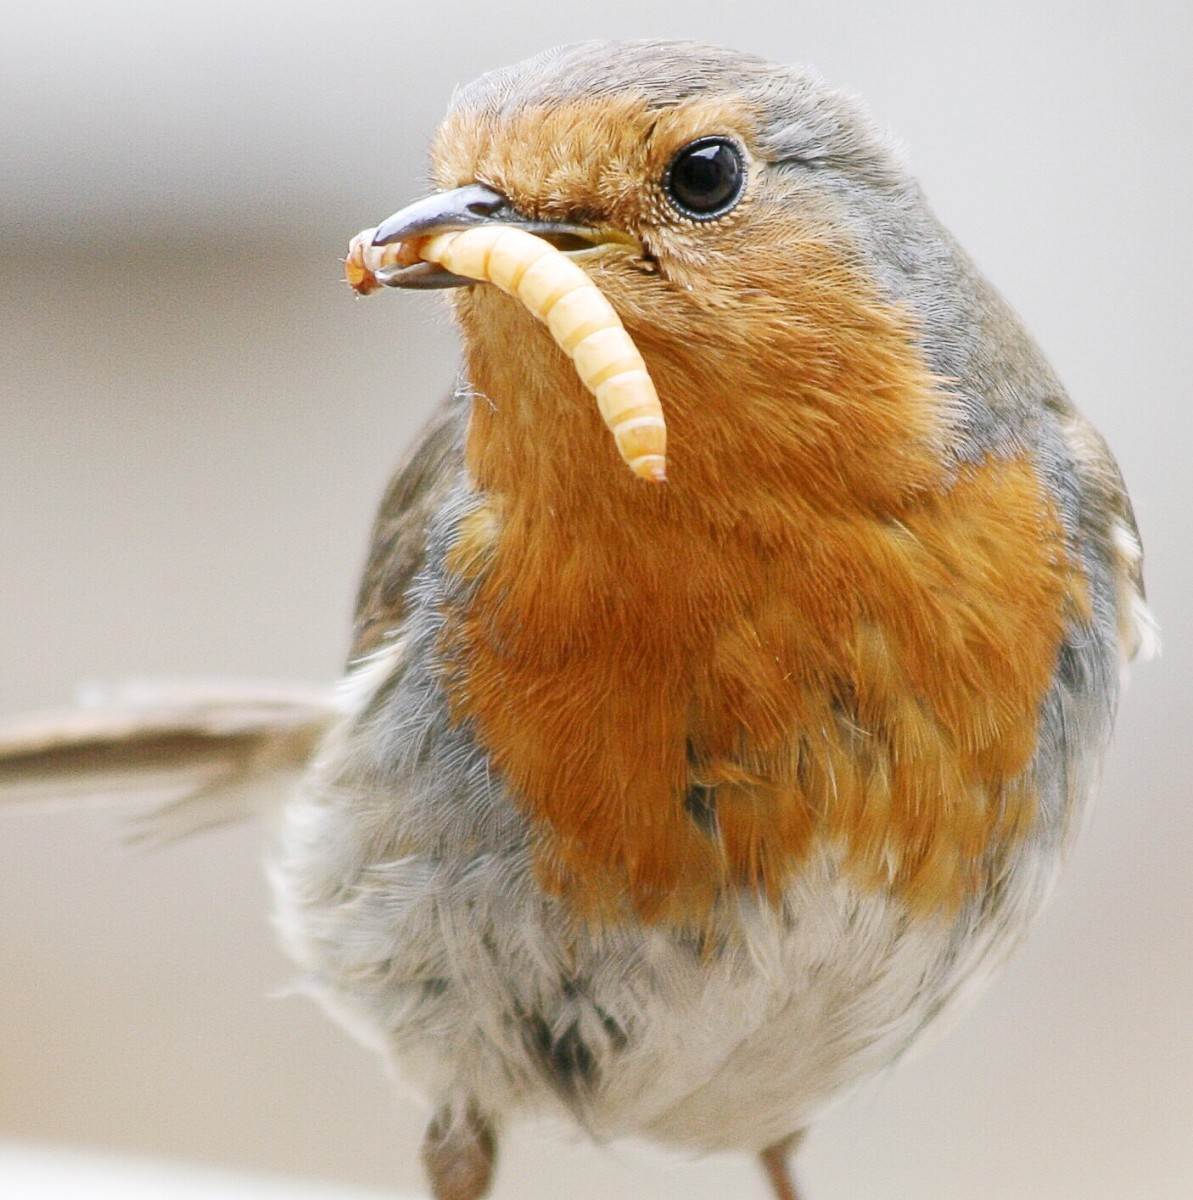 Mealworms are the larval form of a beetle. They are edible for humans as well as this European robin.